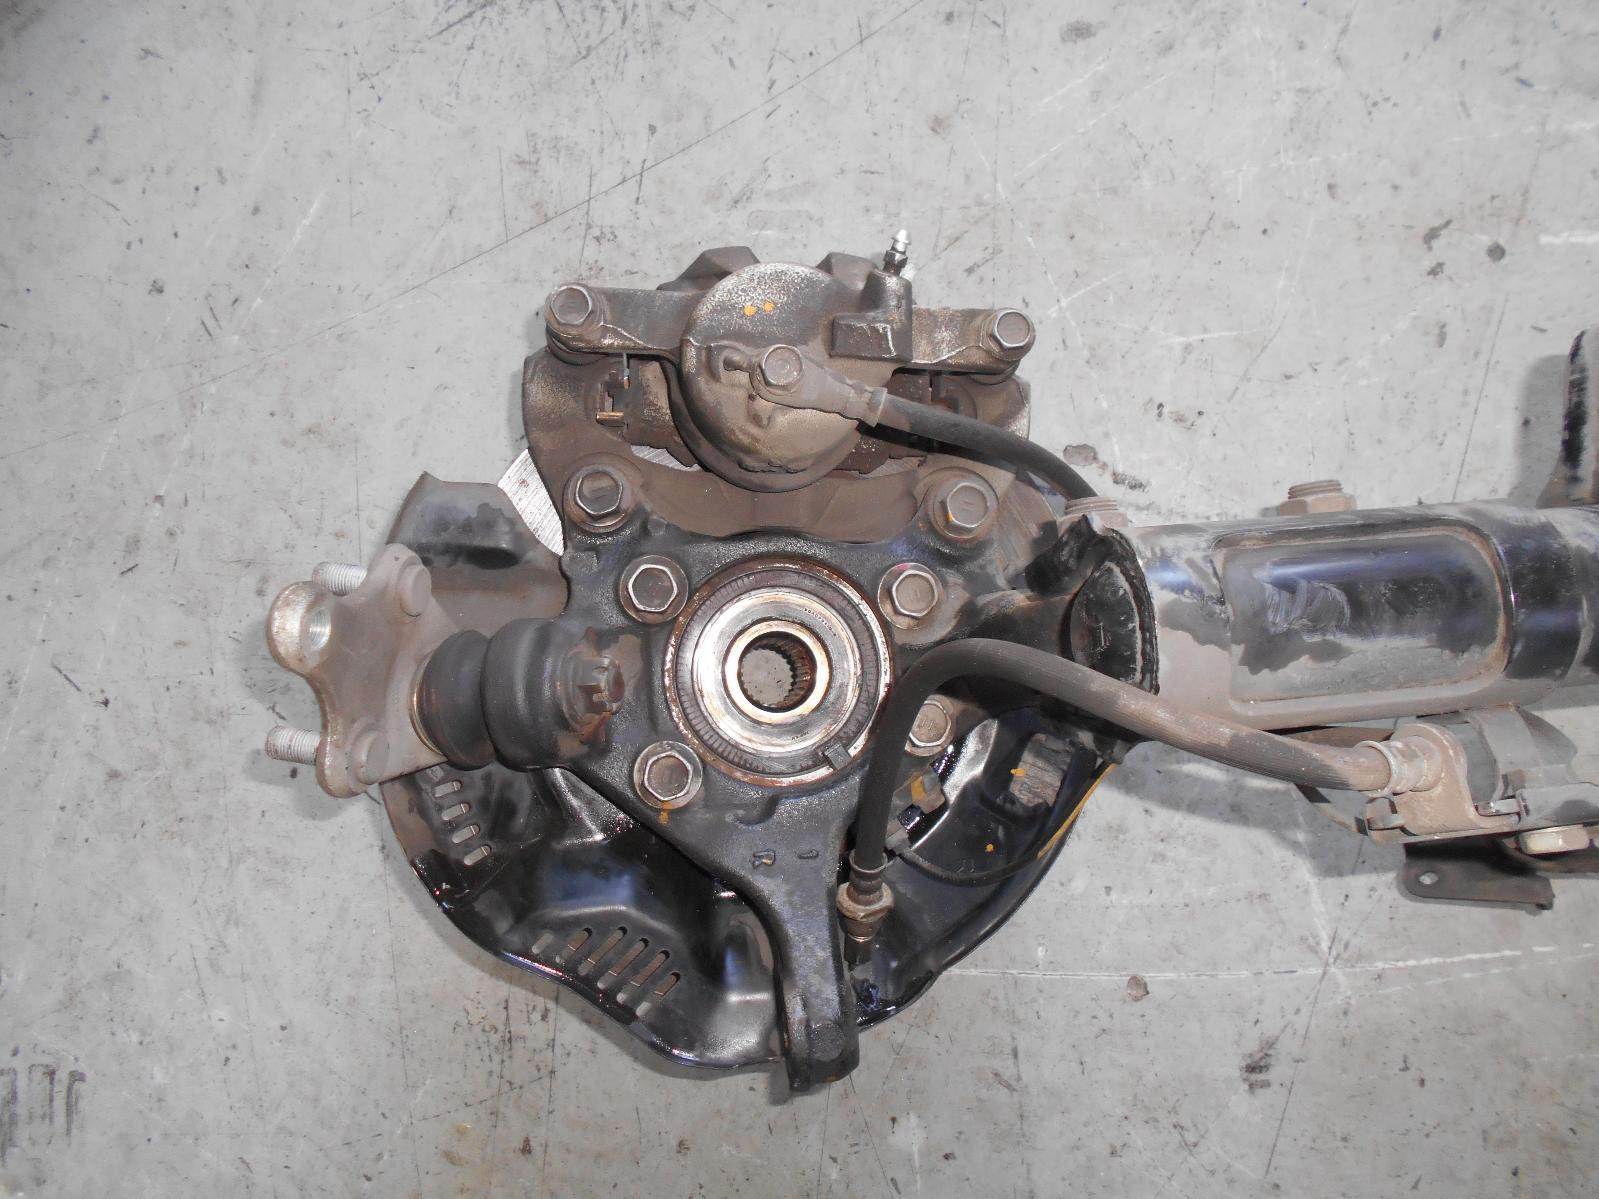 TOYOTA COROLLA, Right Front Hub Assembly, ZRE182R, BOLT ON BEARING CARRIER TYPE, 10/12-